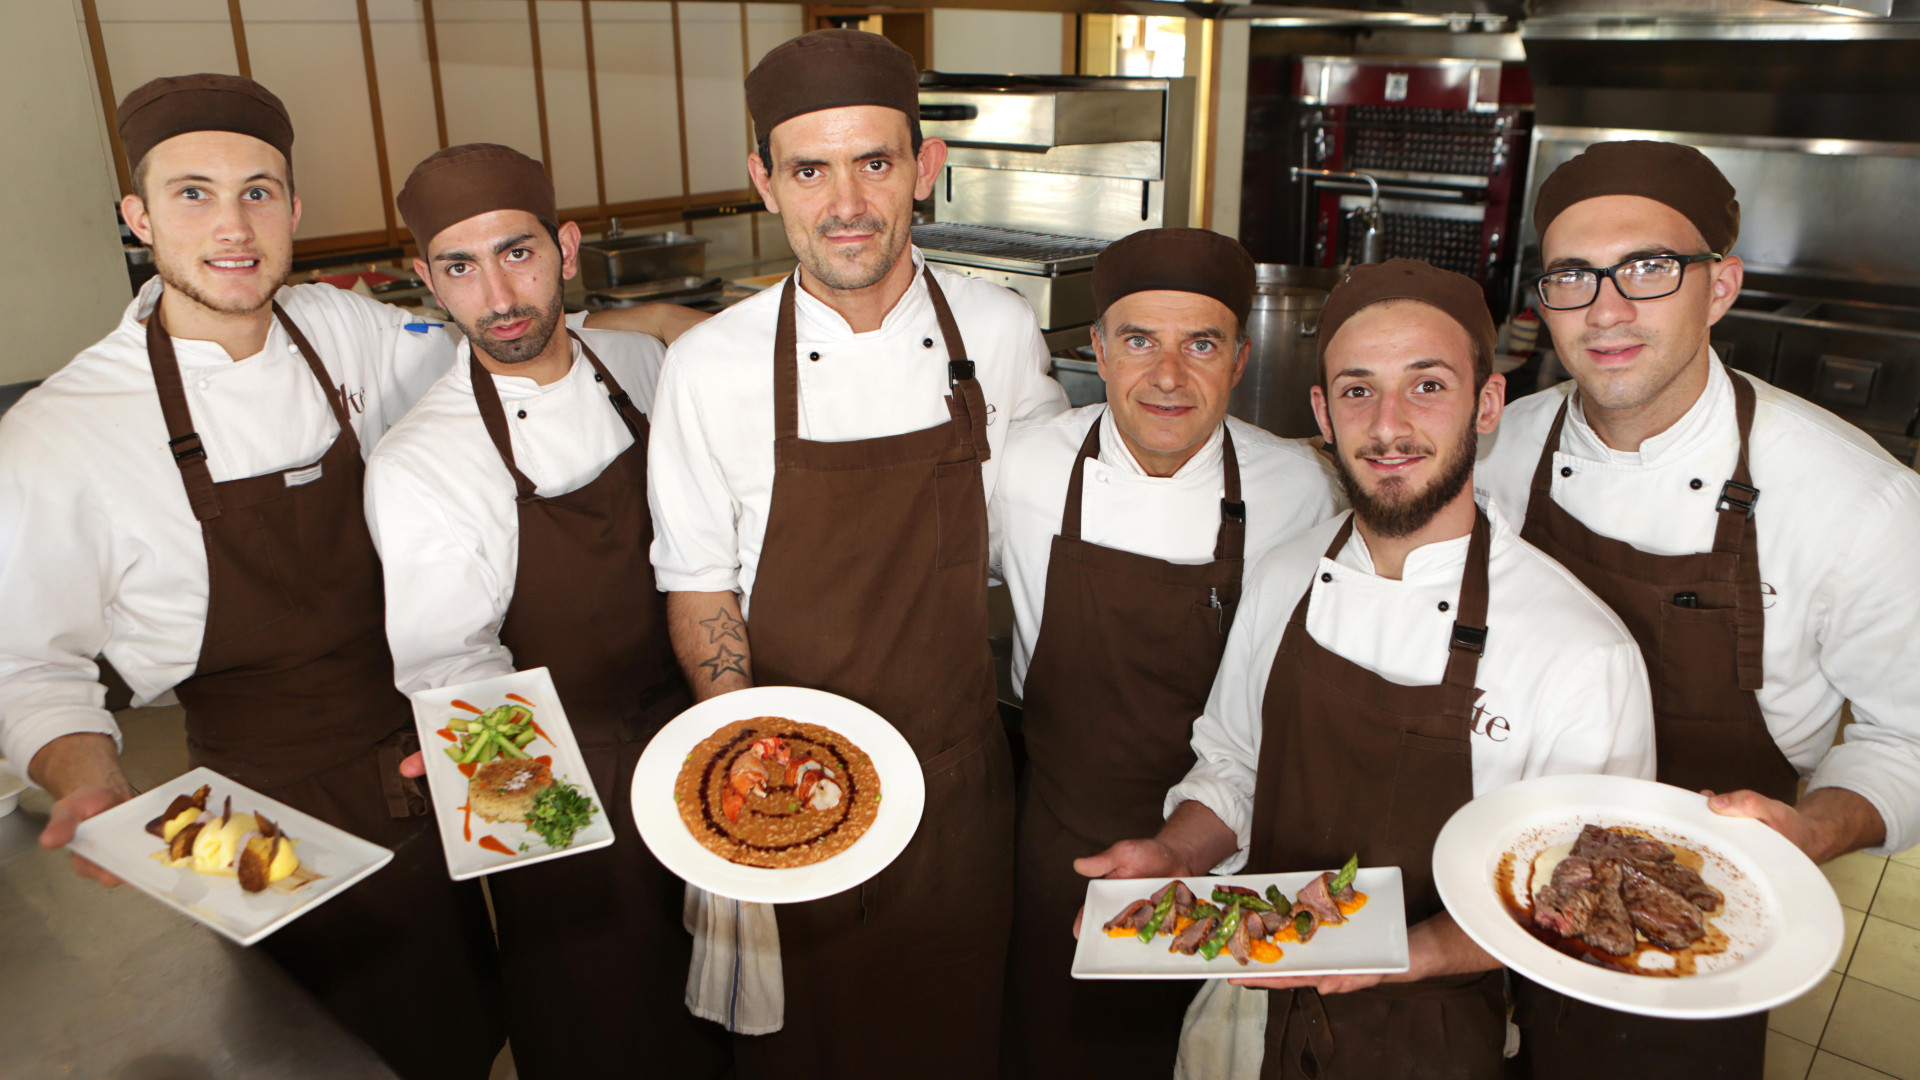 Members the of San Patrignano community can train to be chefs